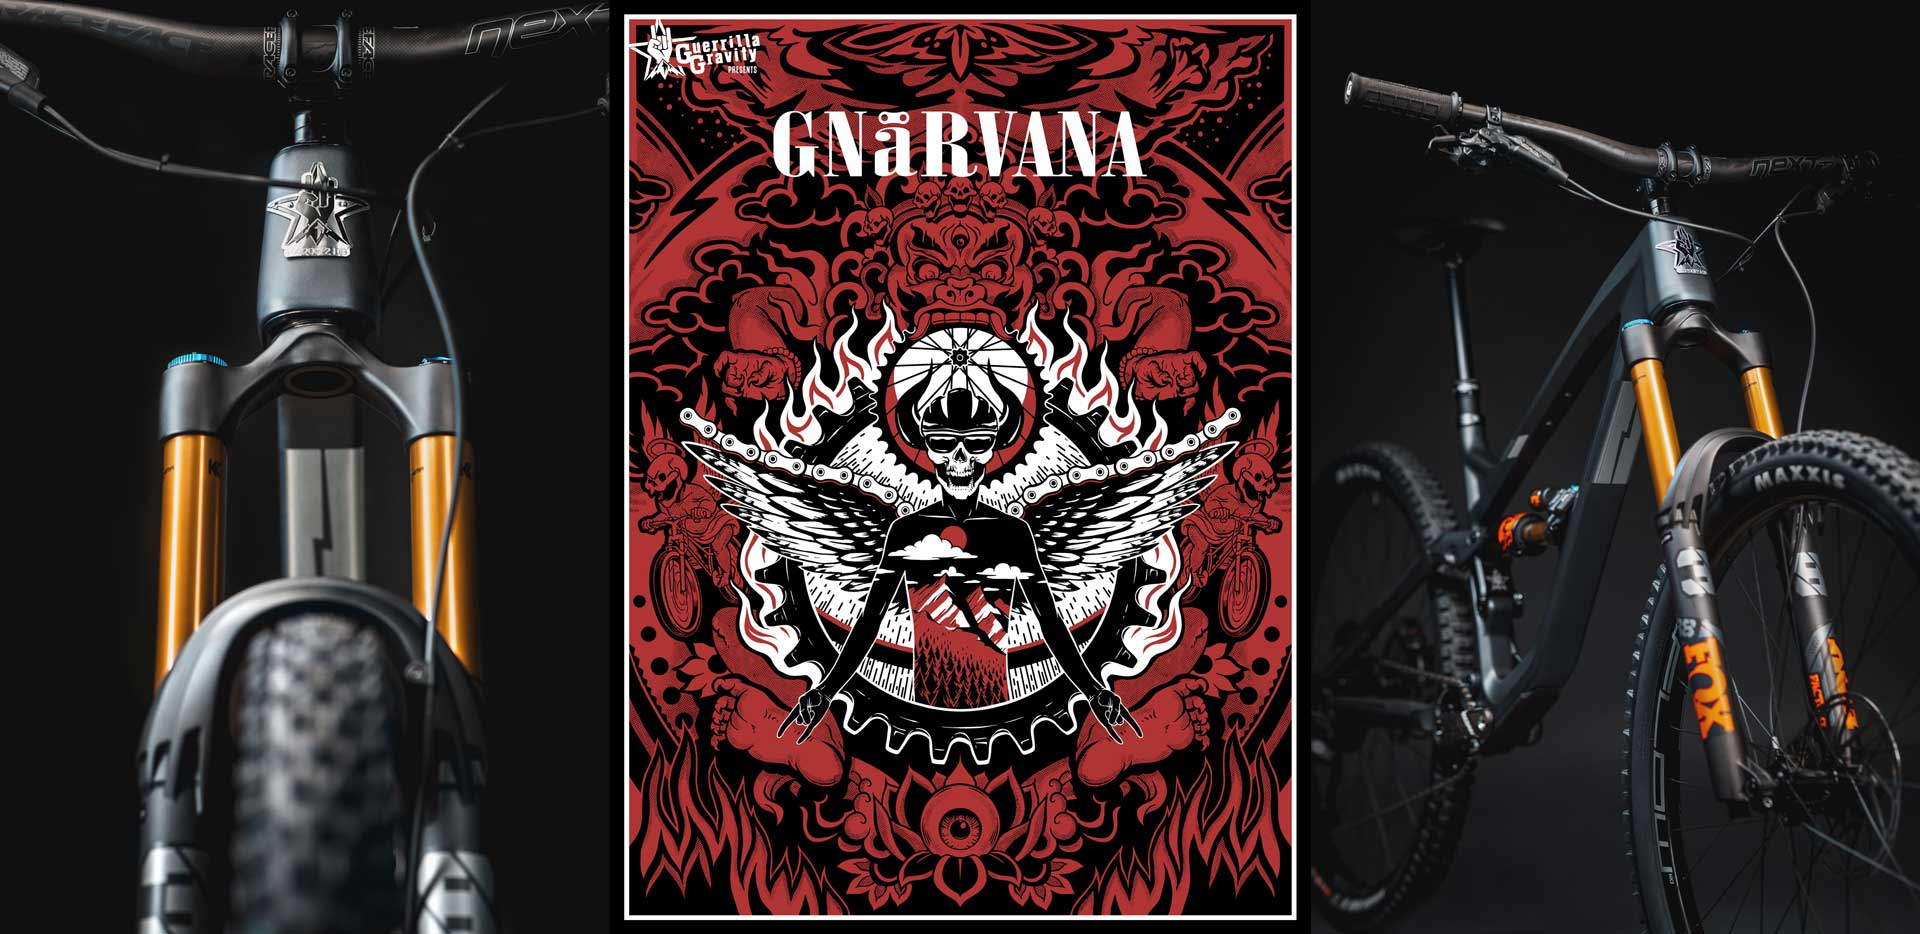 Guerrilla Gravity Releases Gnarvana The Loam Wolf